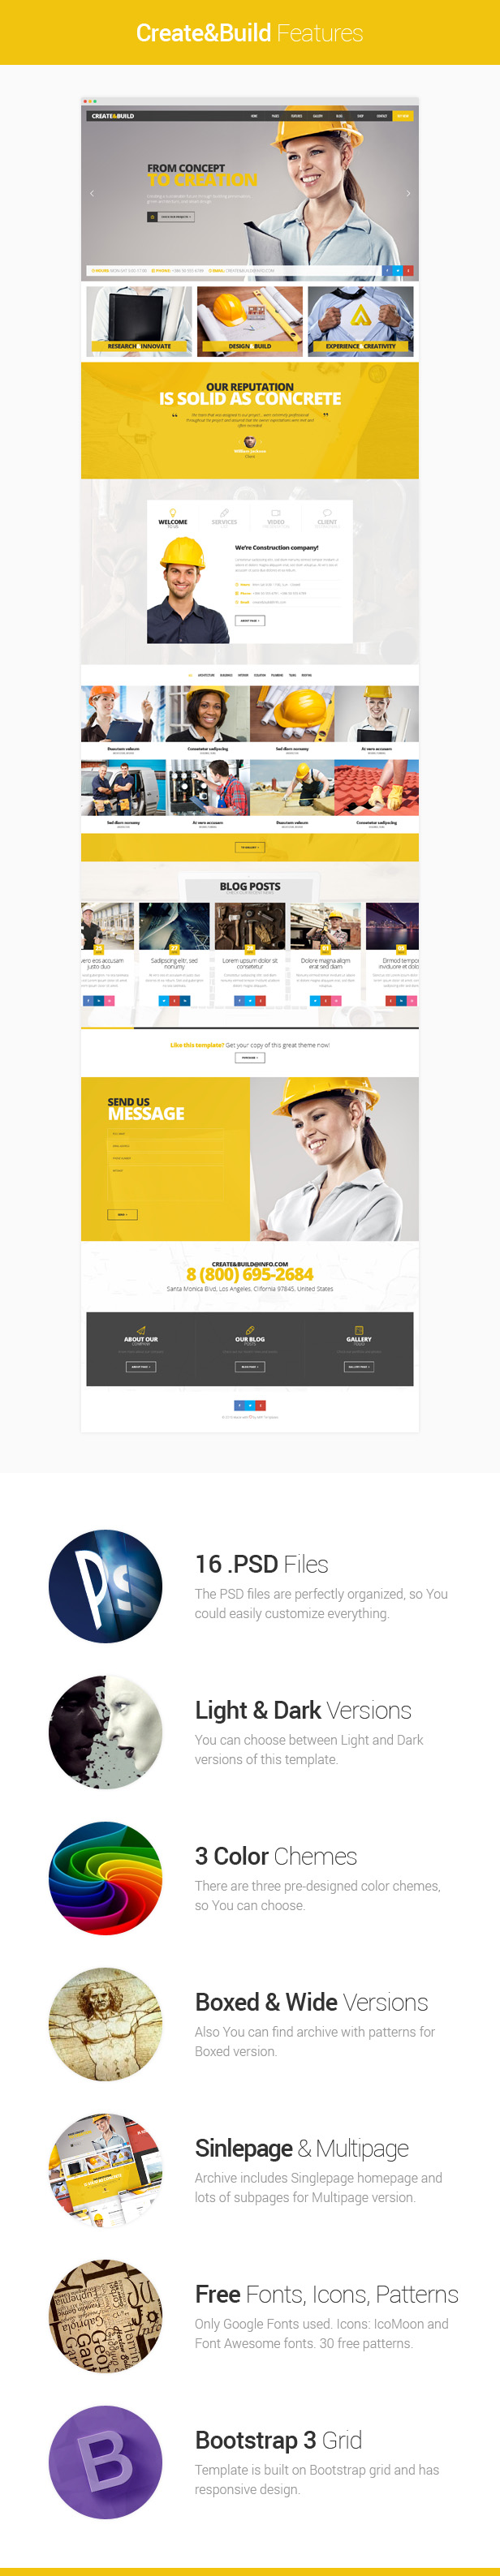 Create and Build - Construction and Building template